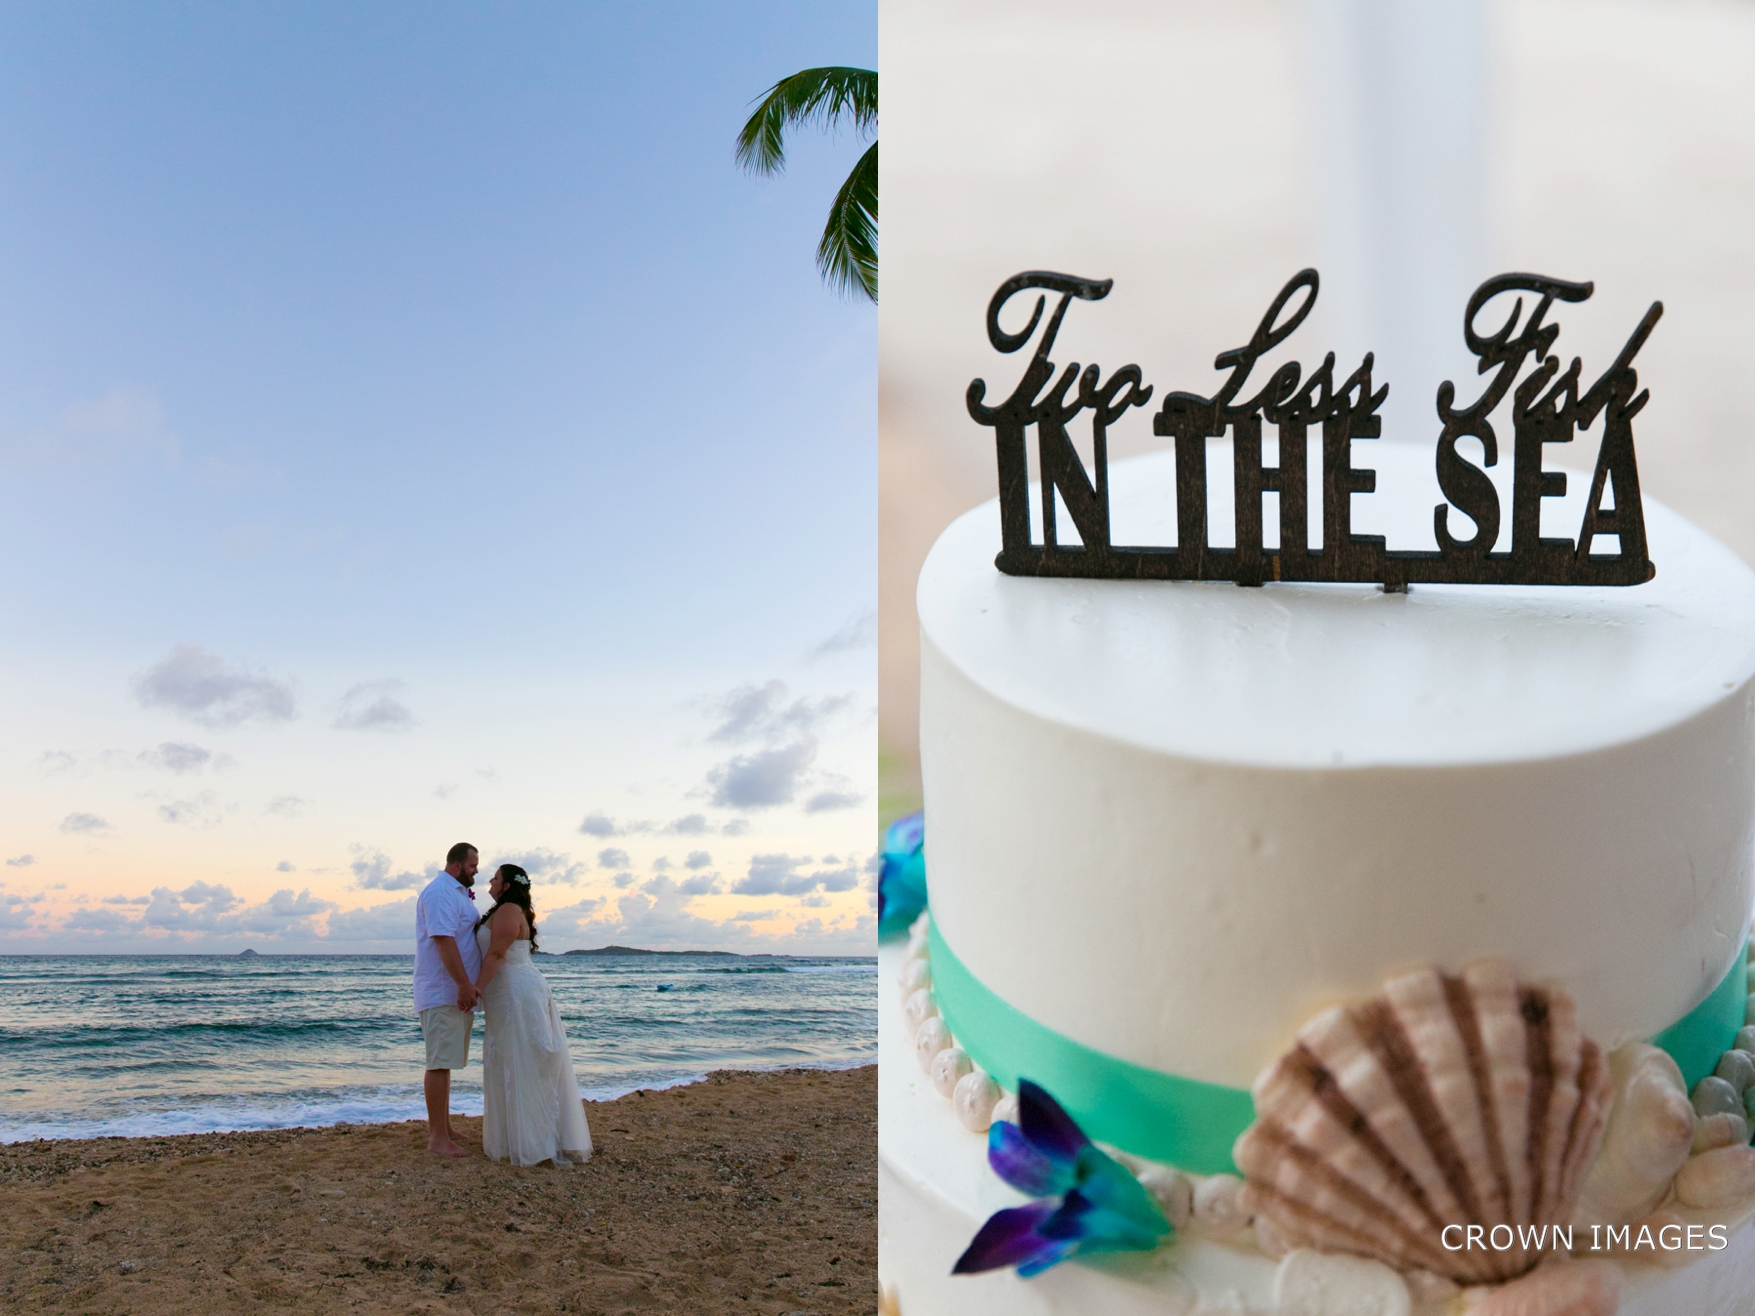 wedding_st_thomas_bolongo_beach_crown_images_0299.jpg